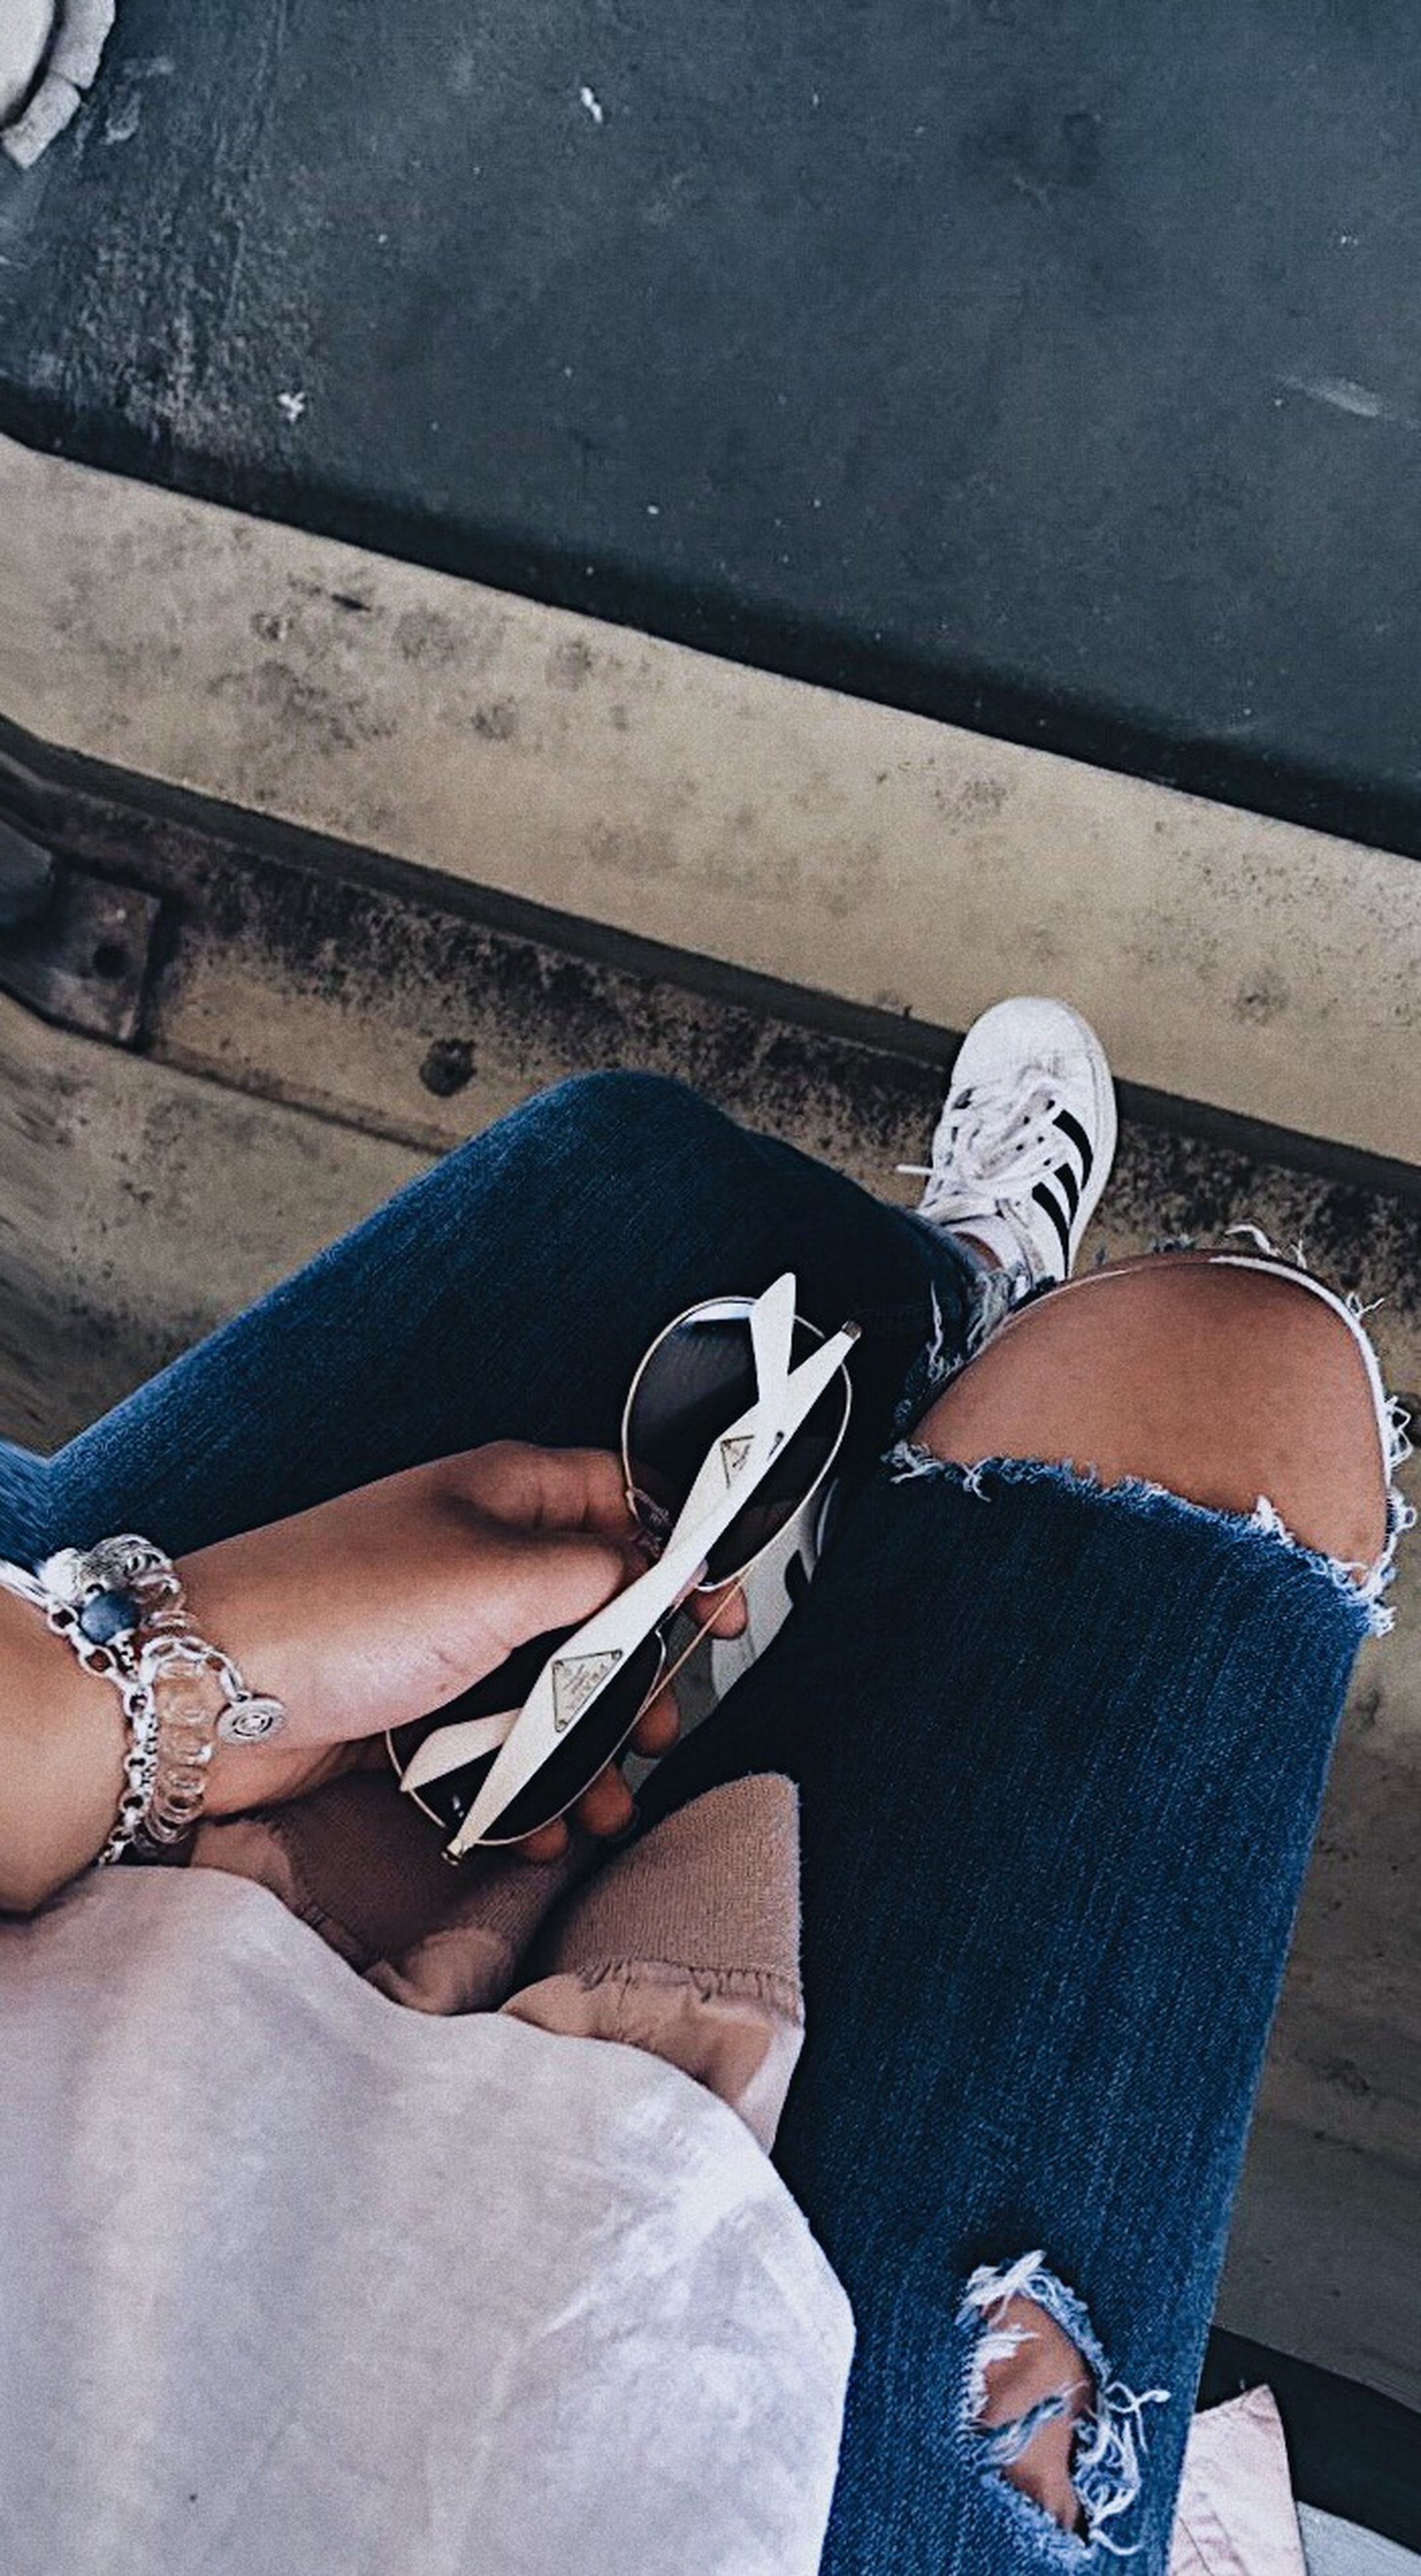 jeans, human leg, high angle view, low section, one person, skateboard, casual clothing, real people, leisure activity, shoe, lifestyles, day, sitting, human body part, outdoors, men, close-up, human hand, adult, people